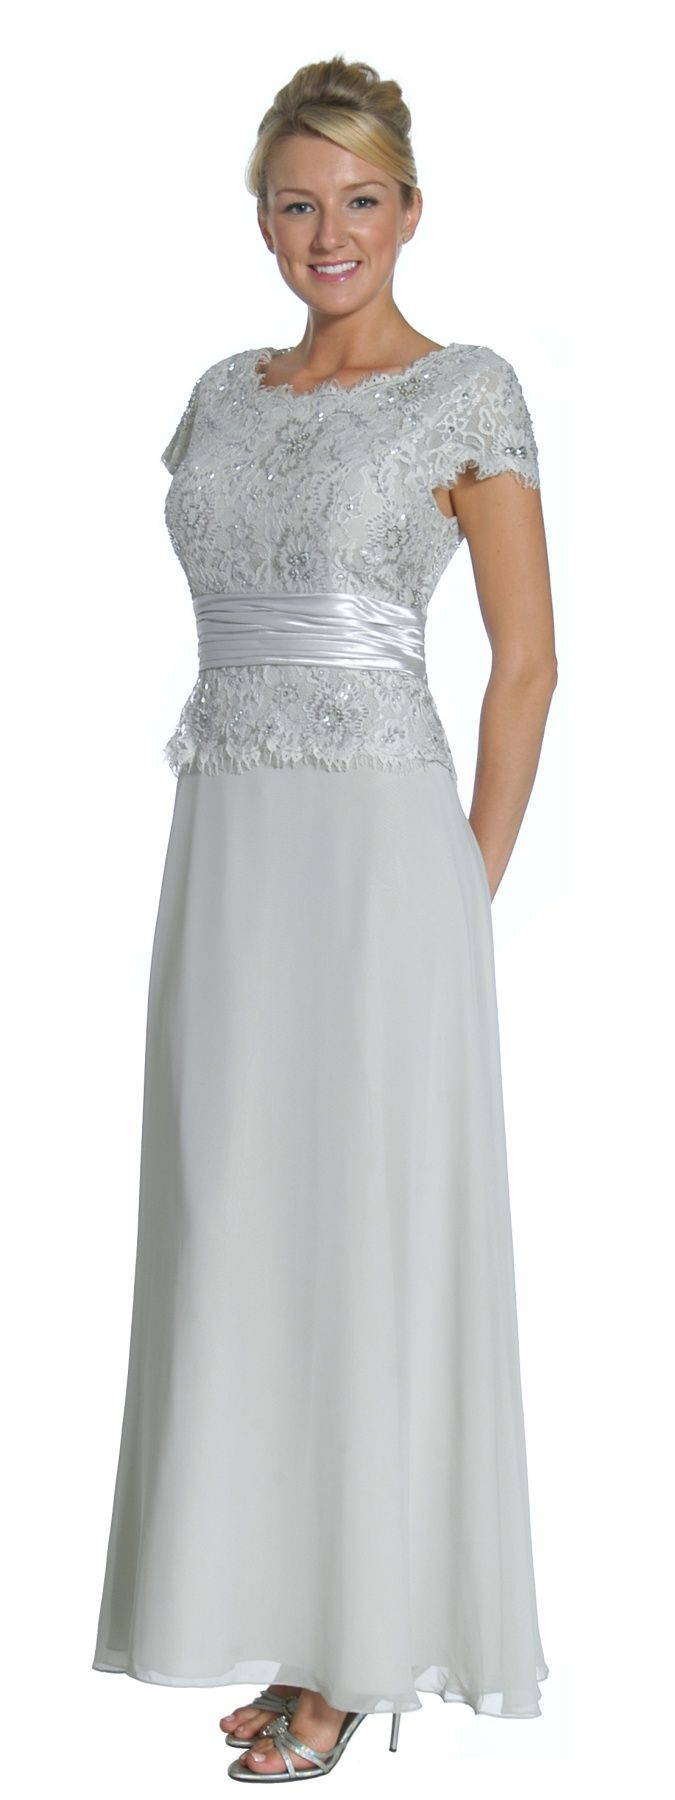 Silver Mother of the Bride/Groom Dress Evening Chiffon Cap Sleeve $149.99